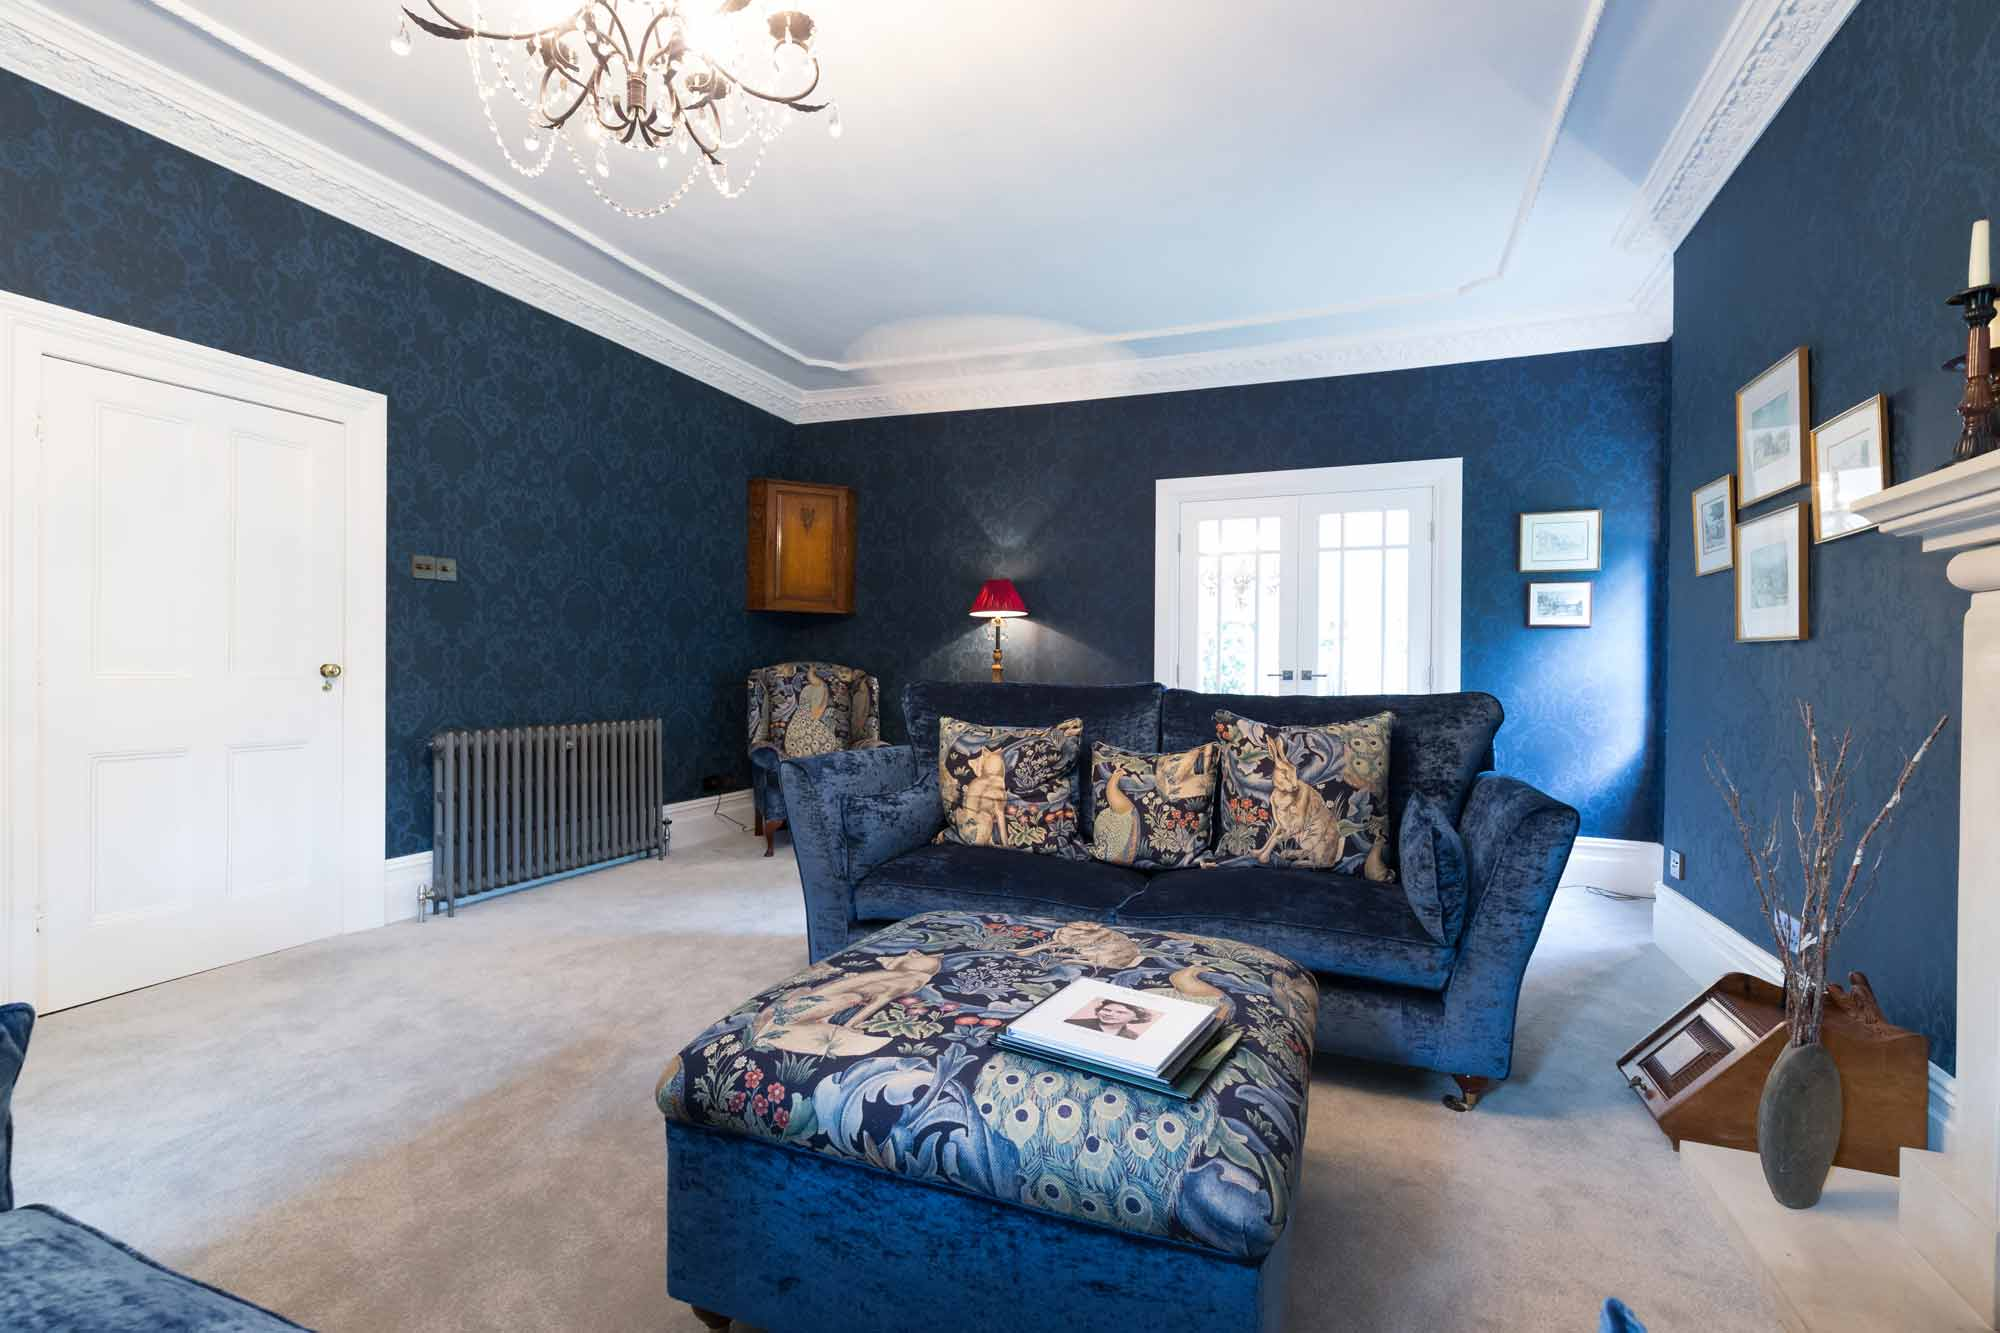 cornice, floral wallpaper, antique radiator, georgian fireplace, crushed velvet sofa, georgian panelled doors,